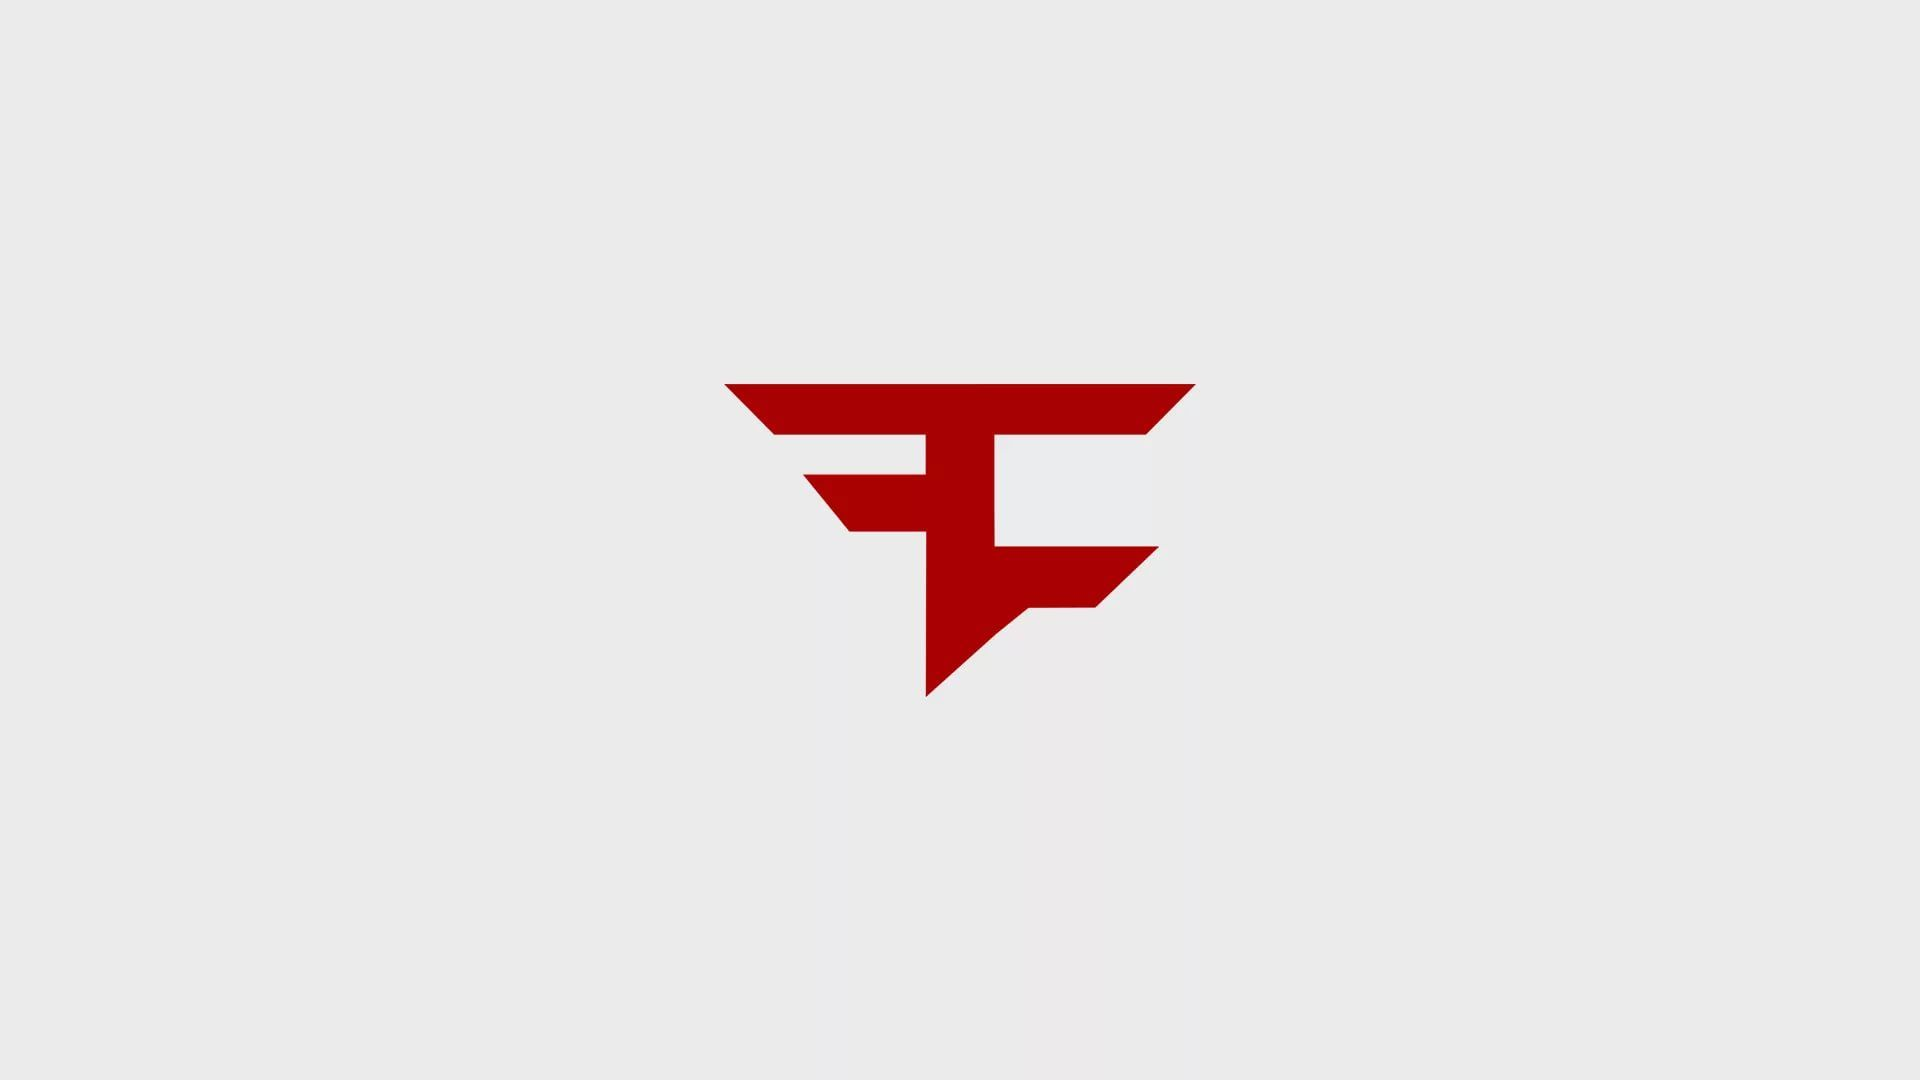 Faze Rug Free Wallpaper and Background